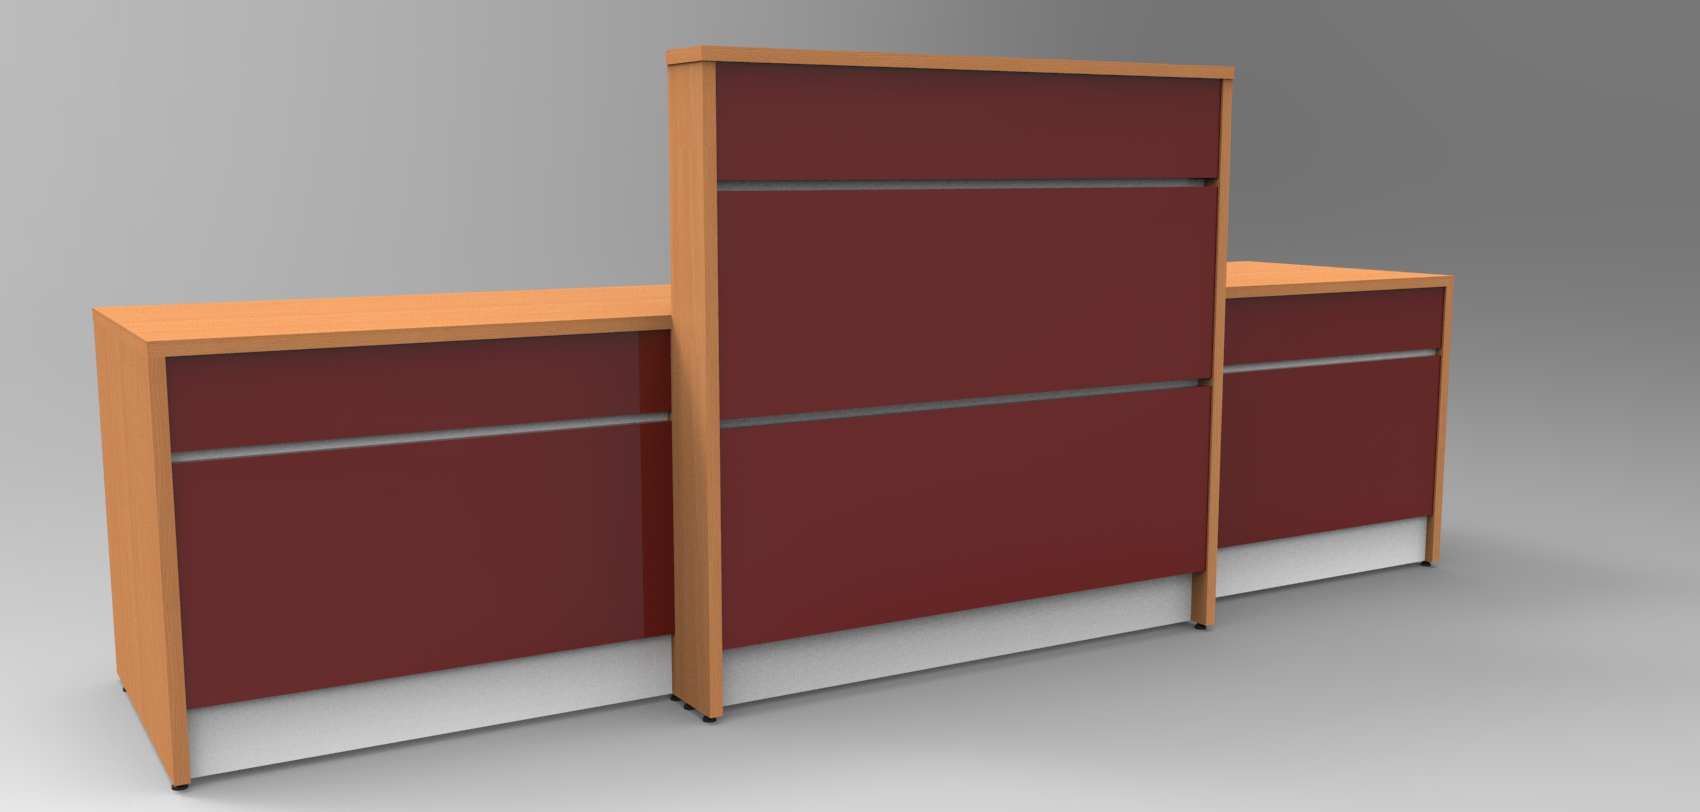 Image 11UA - Union tall+desk height. Beech + Burgundy